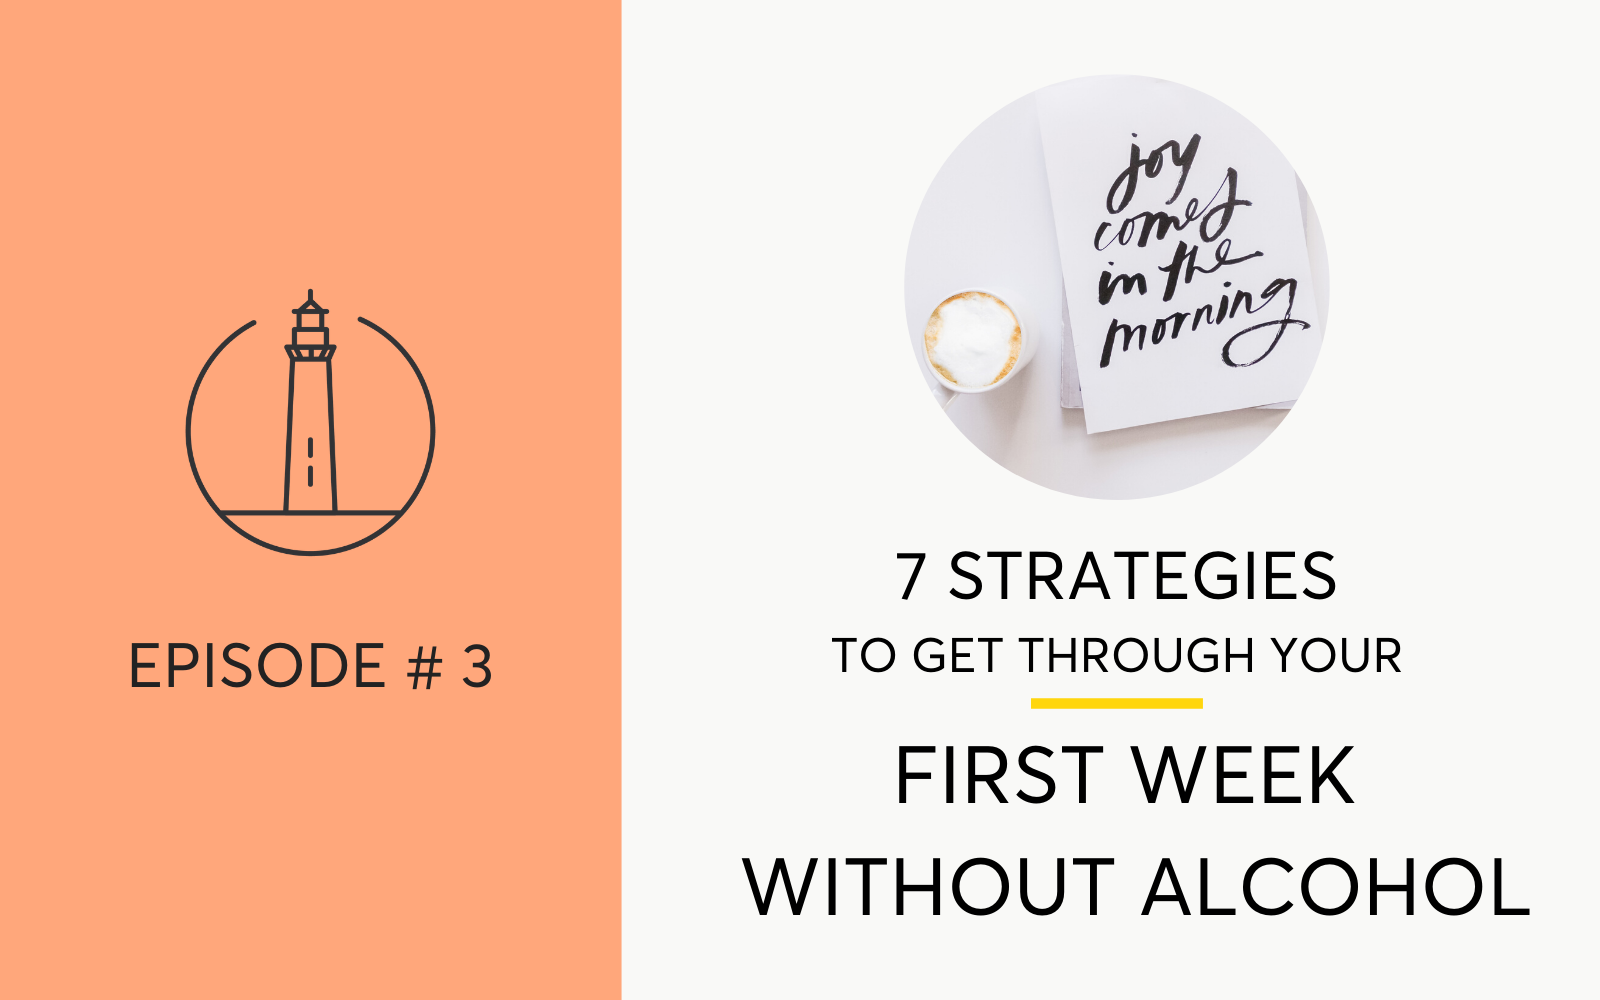 7 Strategies To Get Through Your First Week Without Alcohol